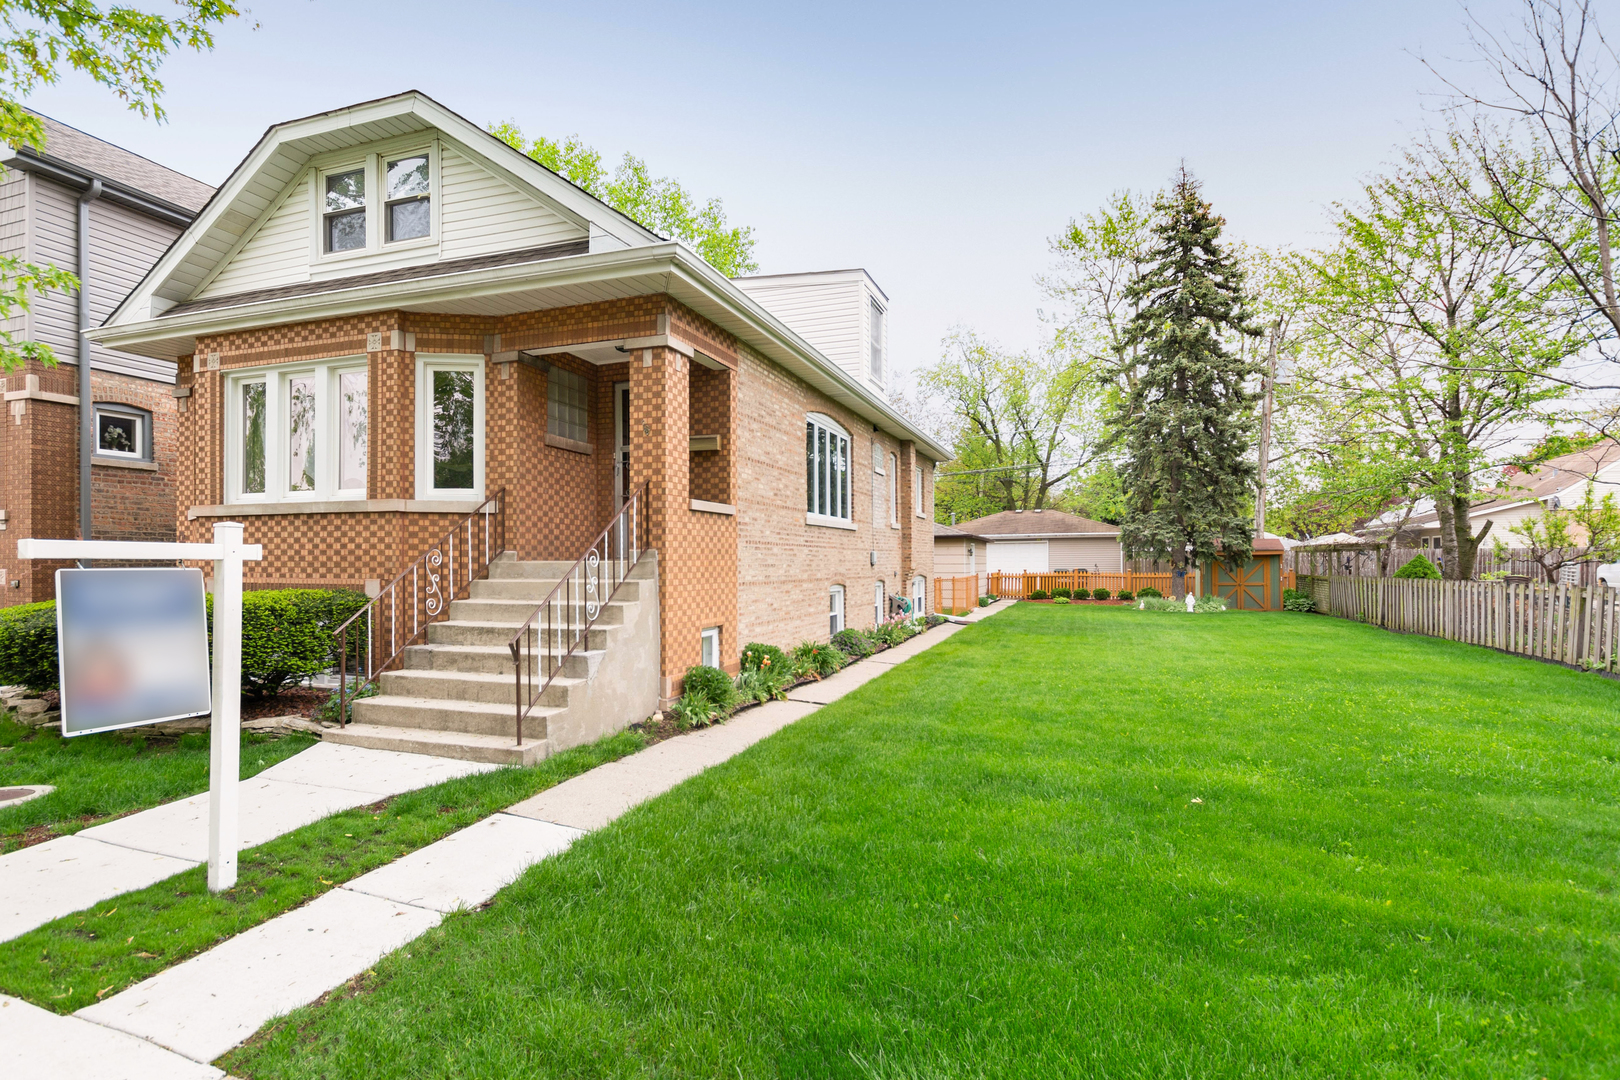 Property for sale at 4149 Park Avenue, BROOKFIELD,  Il 60513